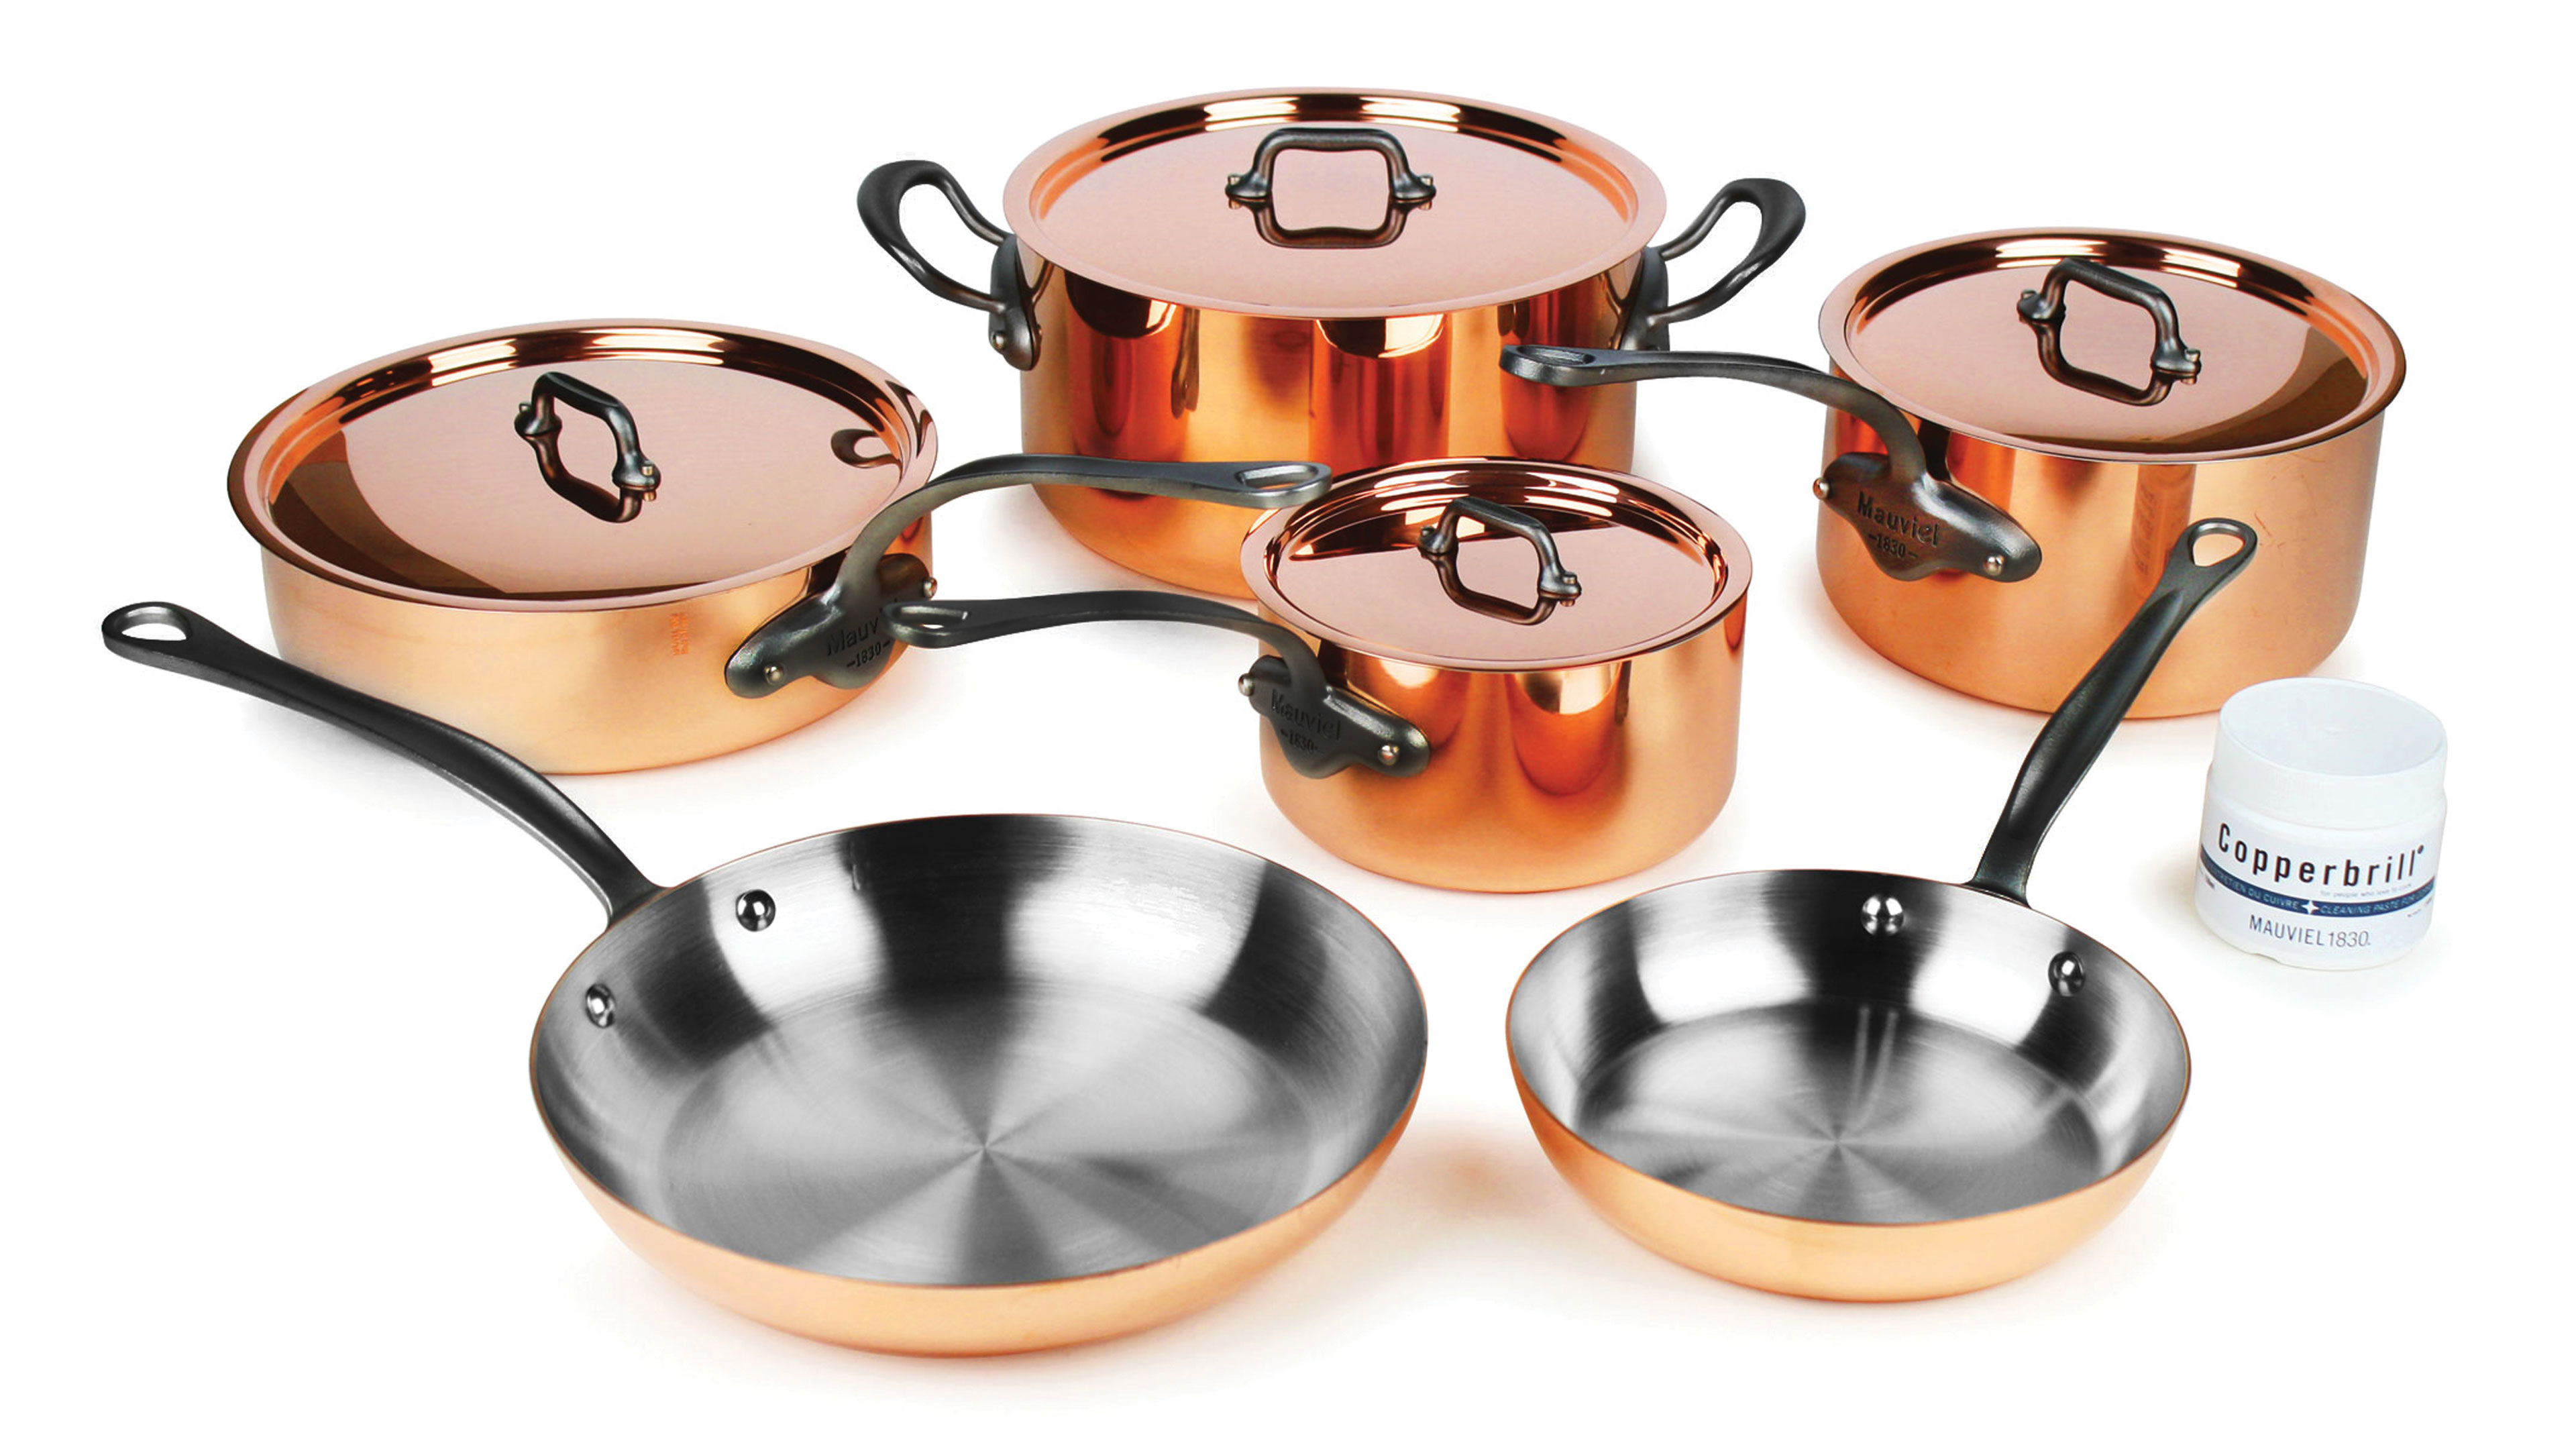 Mauviel M Heritage 150c2 Copper Cookware Set 10 Piece